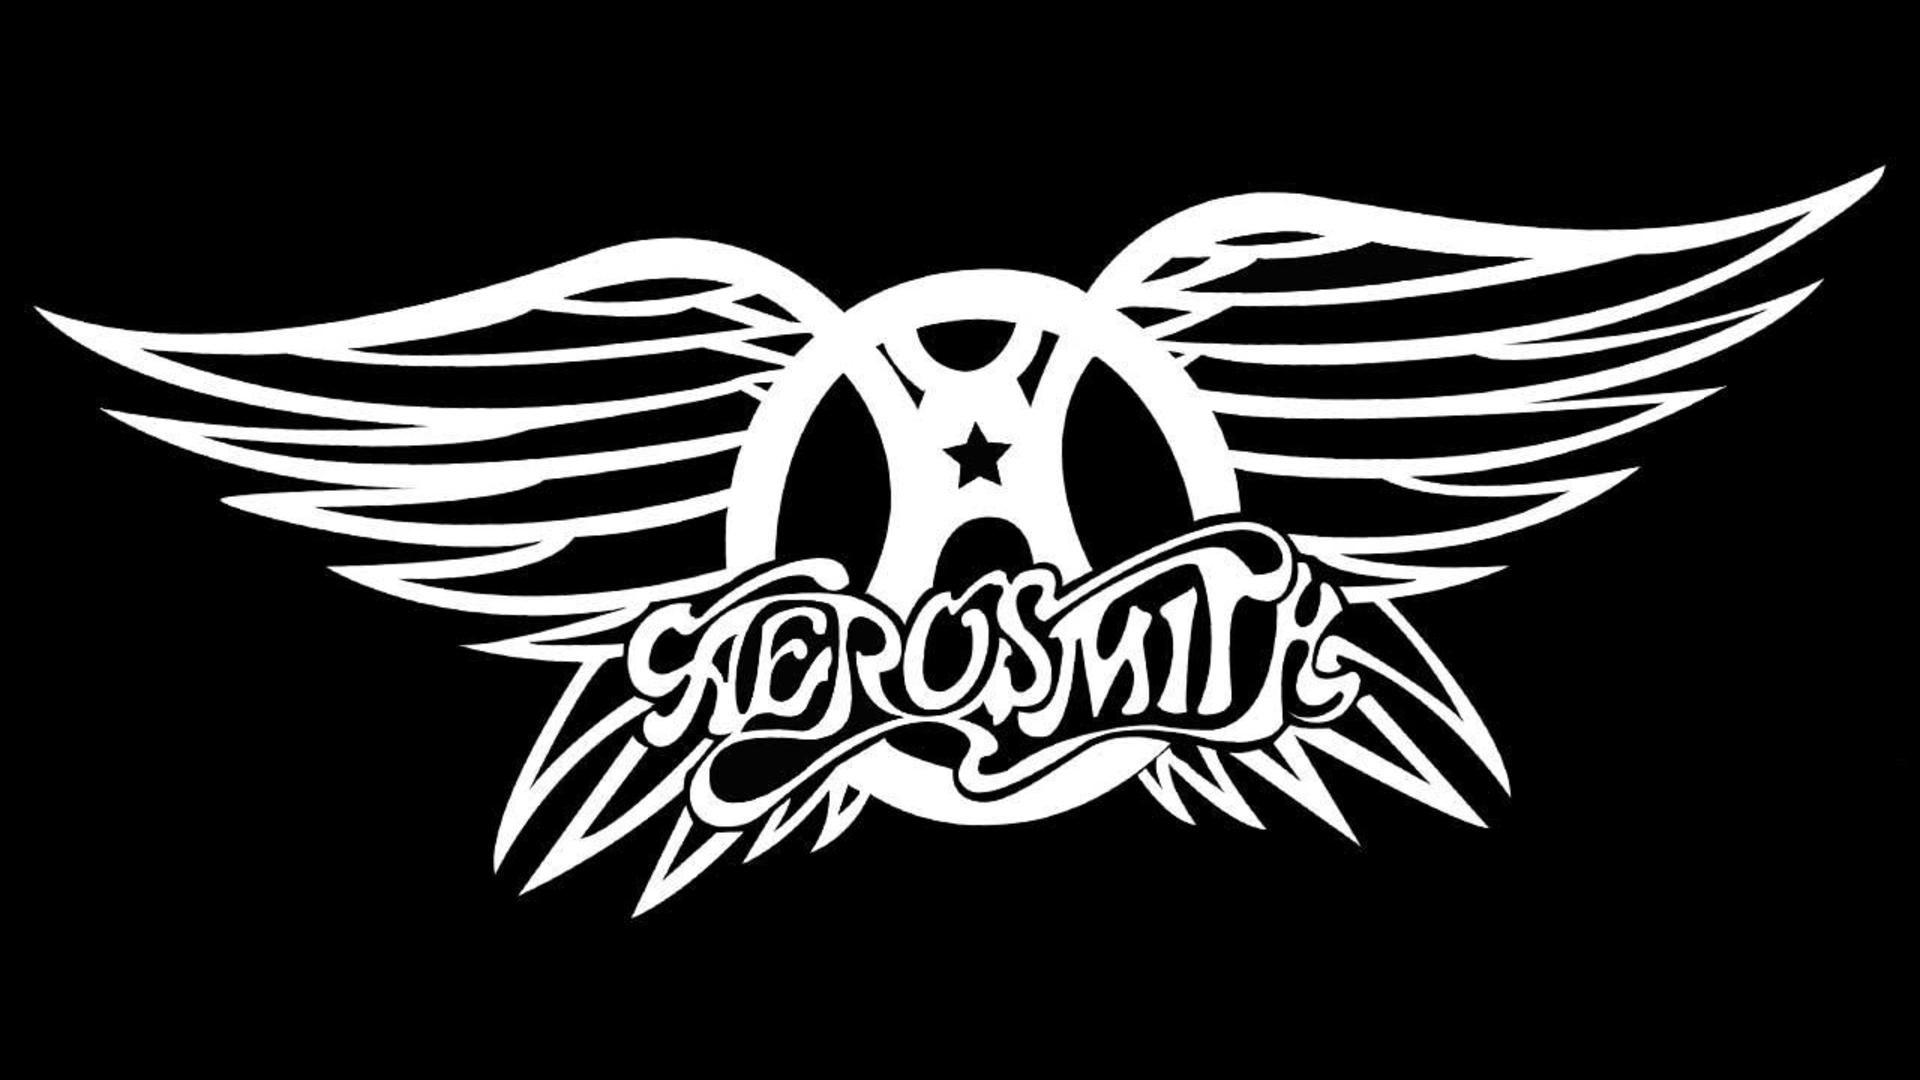 aerosmith-logo jpg Aerosmith Logo Png - Aerosmith Record Vector PNG